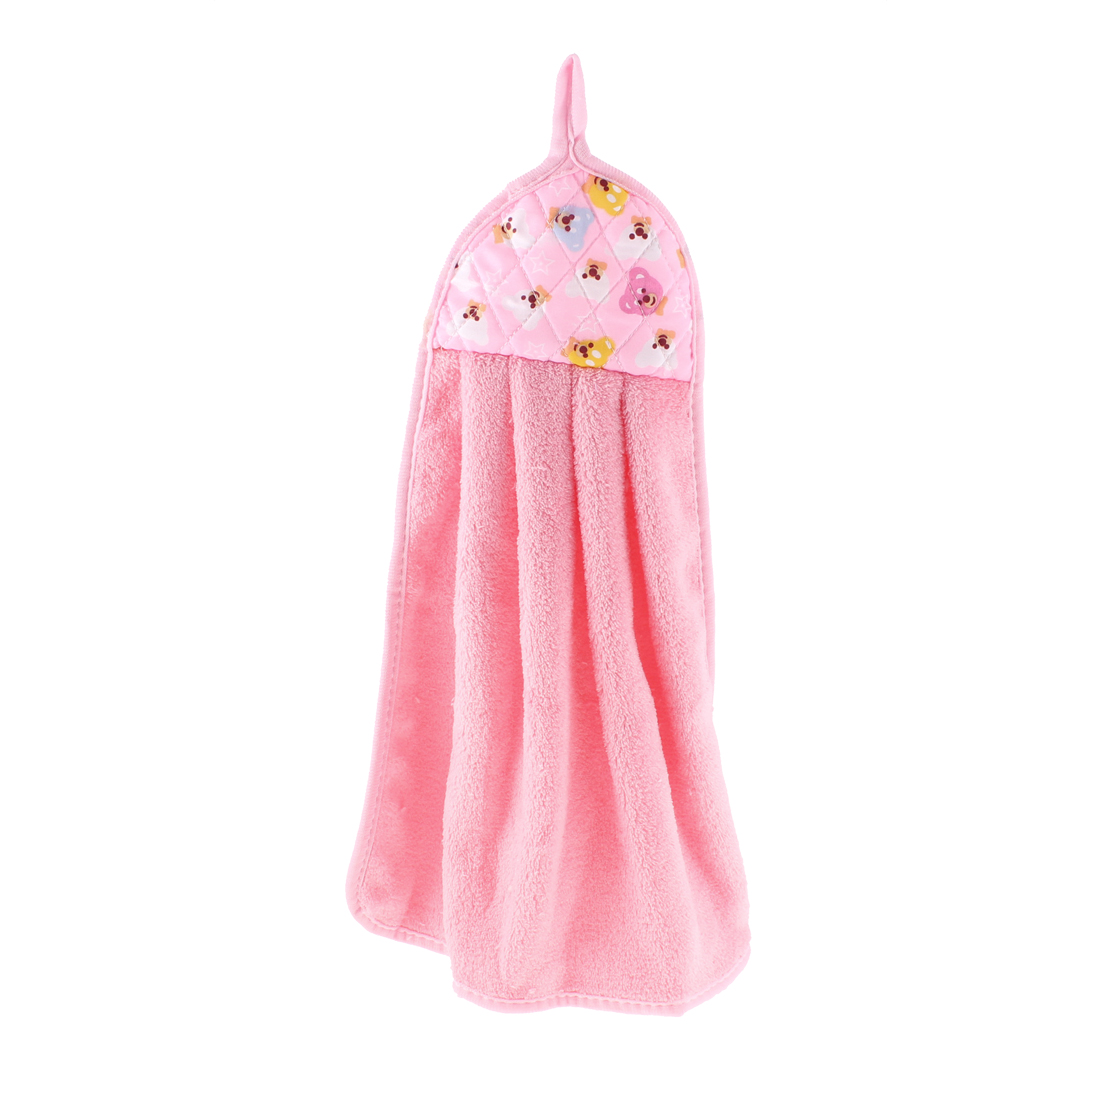 Kitchen Bears Printed Wall Hanging Cleaning Hand Drying Towel Pink